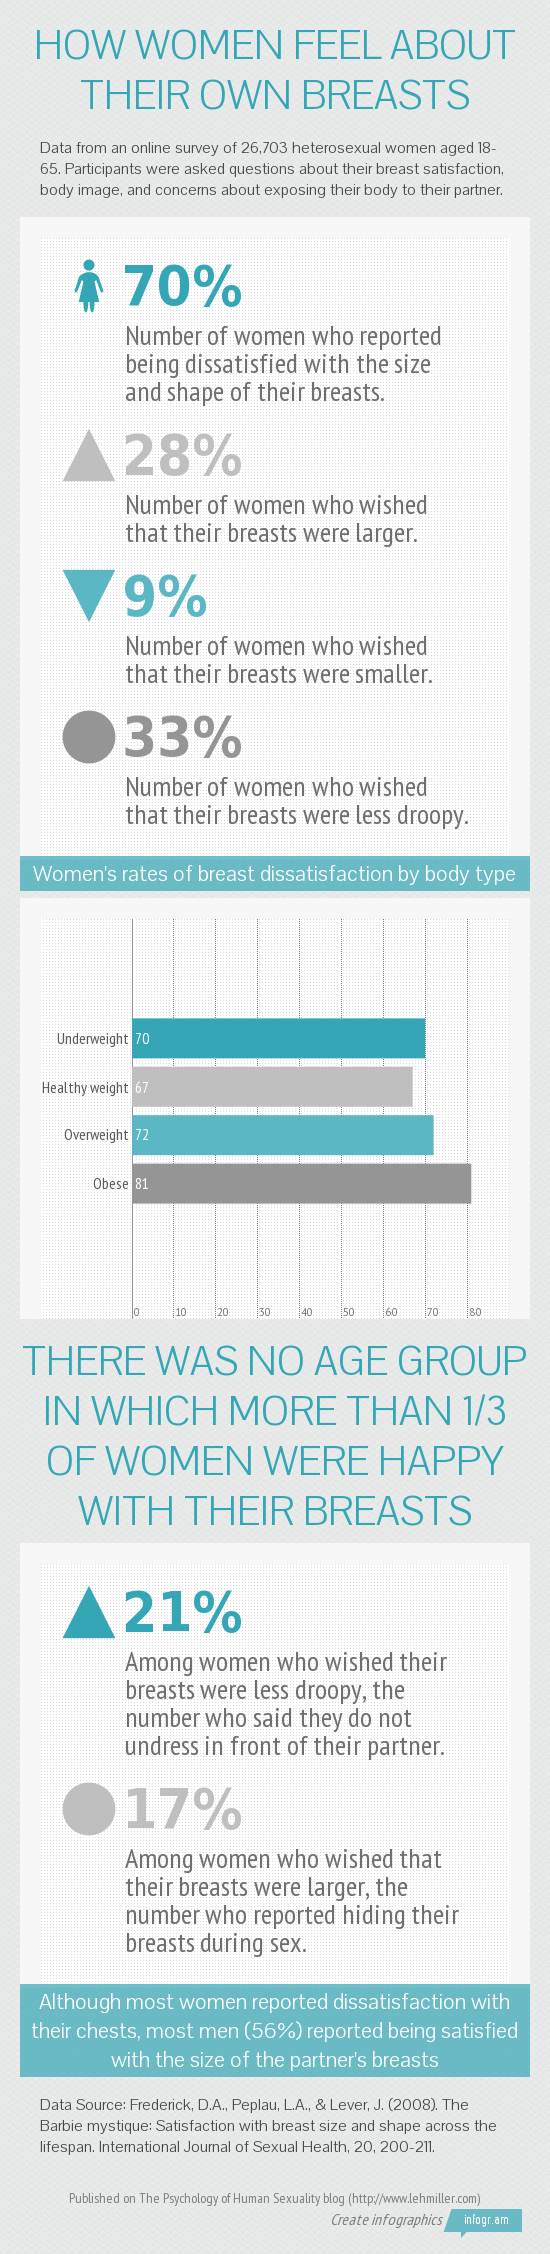 Infographic describing how women feel about the size and shape of their breasts